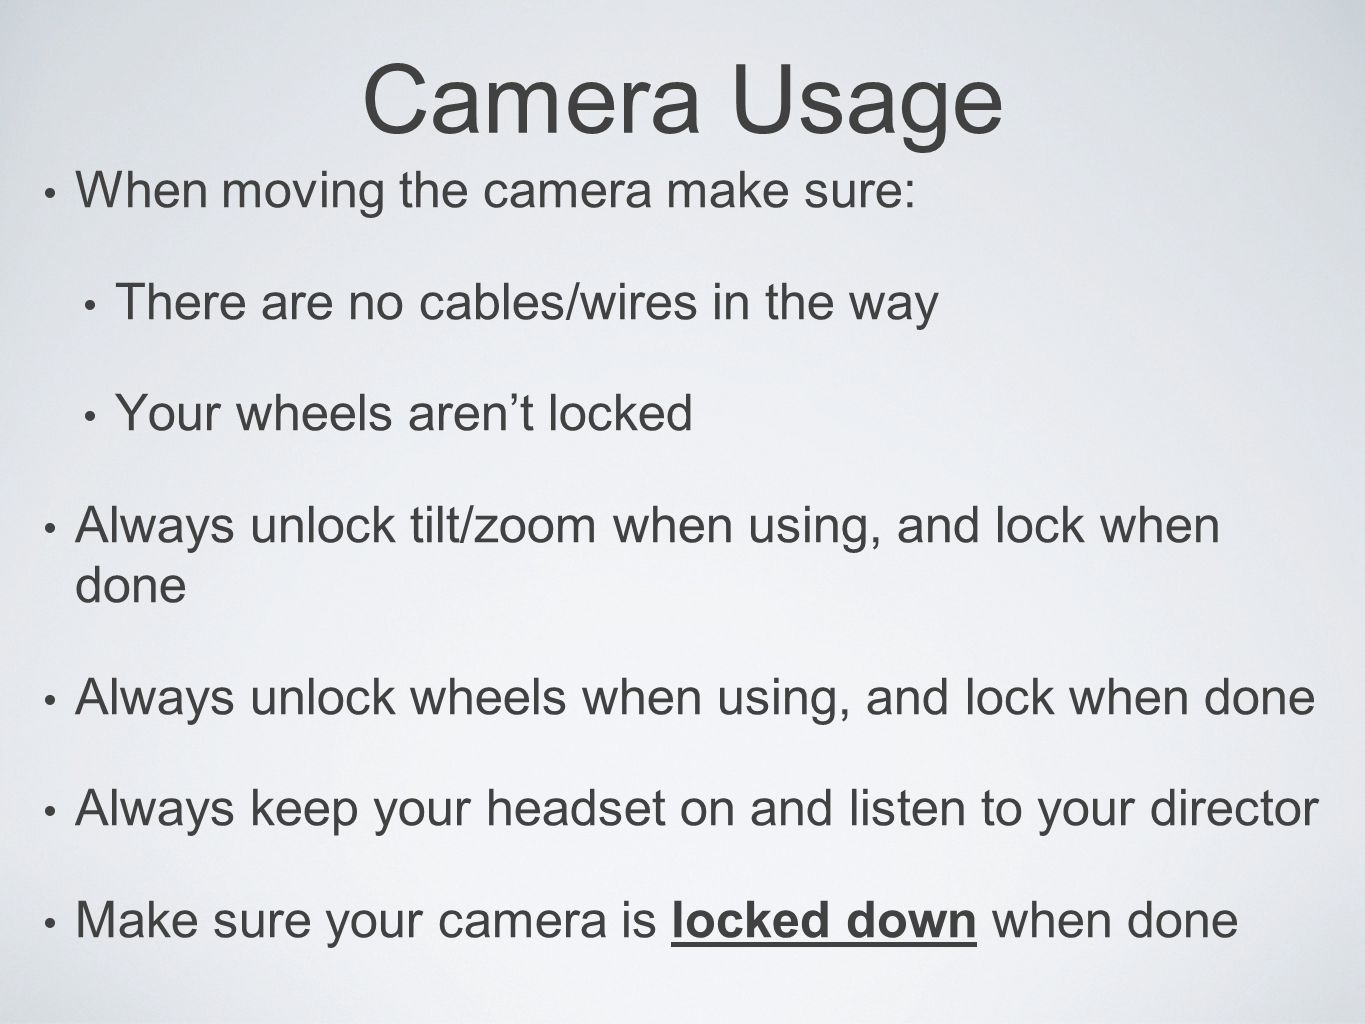 Camera Usage When moving the camera make sure: There are no cables/wires in the way Your wheels aren't locked Always unlock tilt/zoom when using, and lock when done Always unlock wheels when using, and lock when done Always keep your headset on and listen to your director Make sure your camera is locked down when done